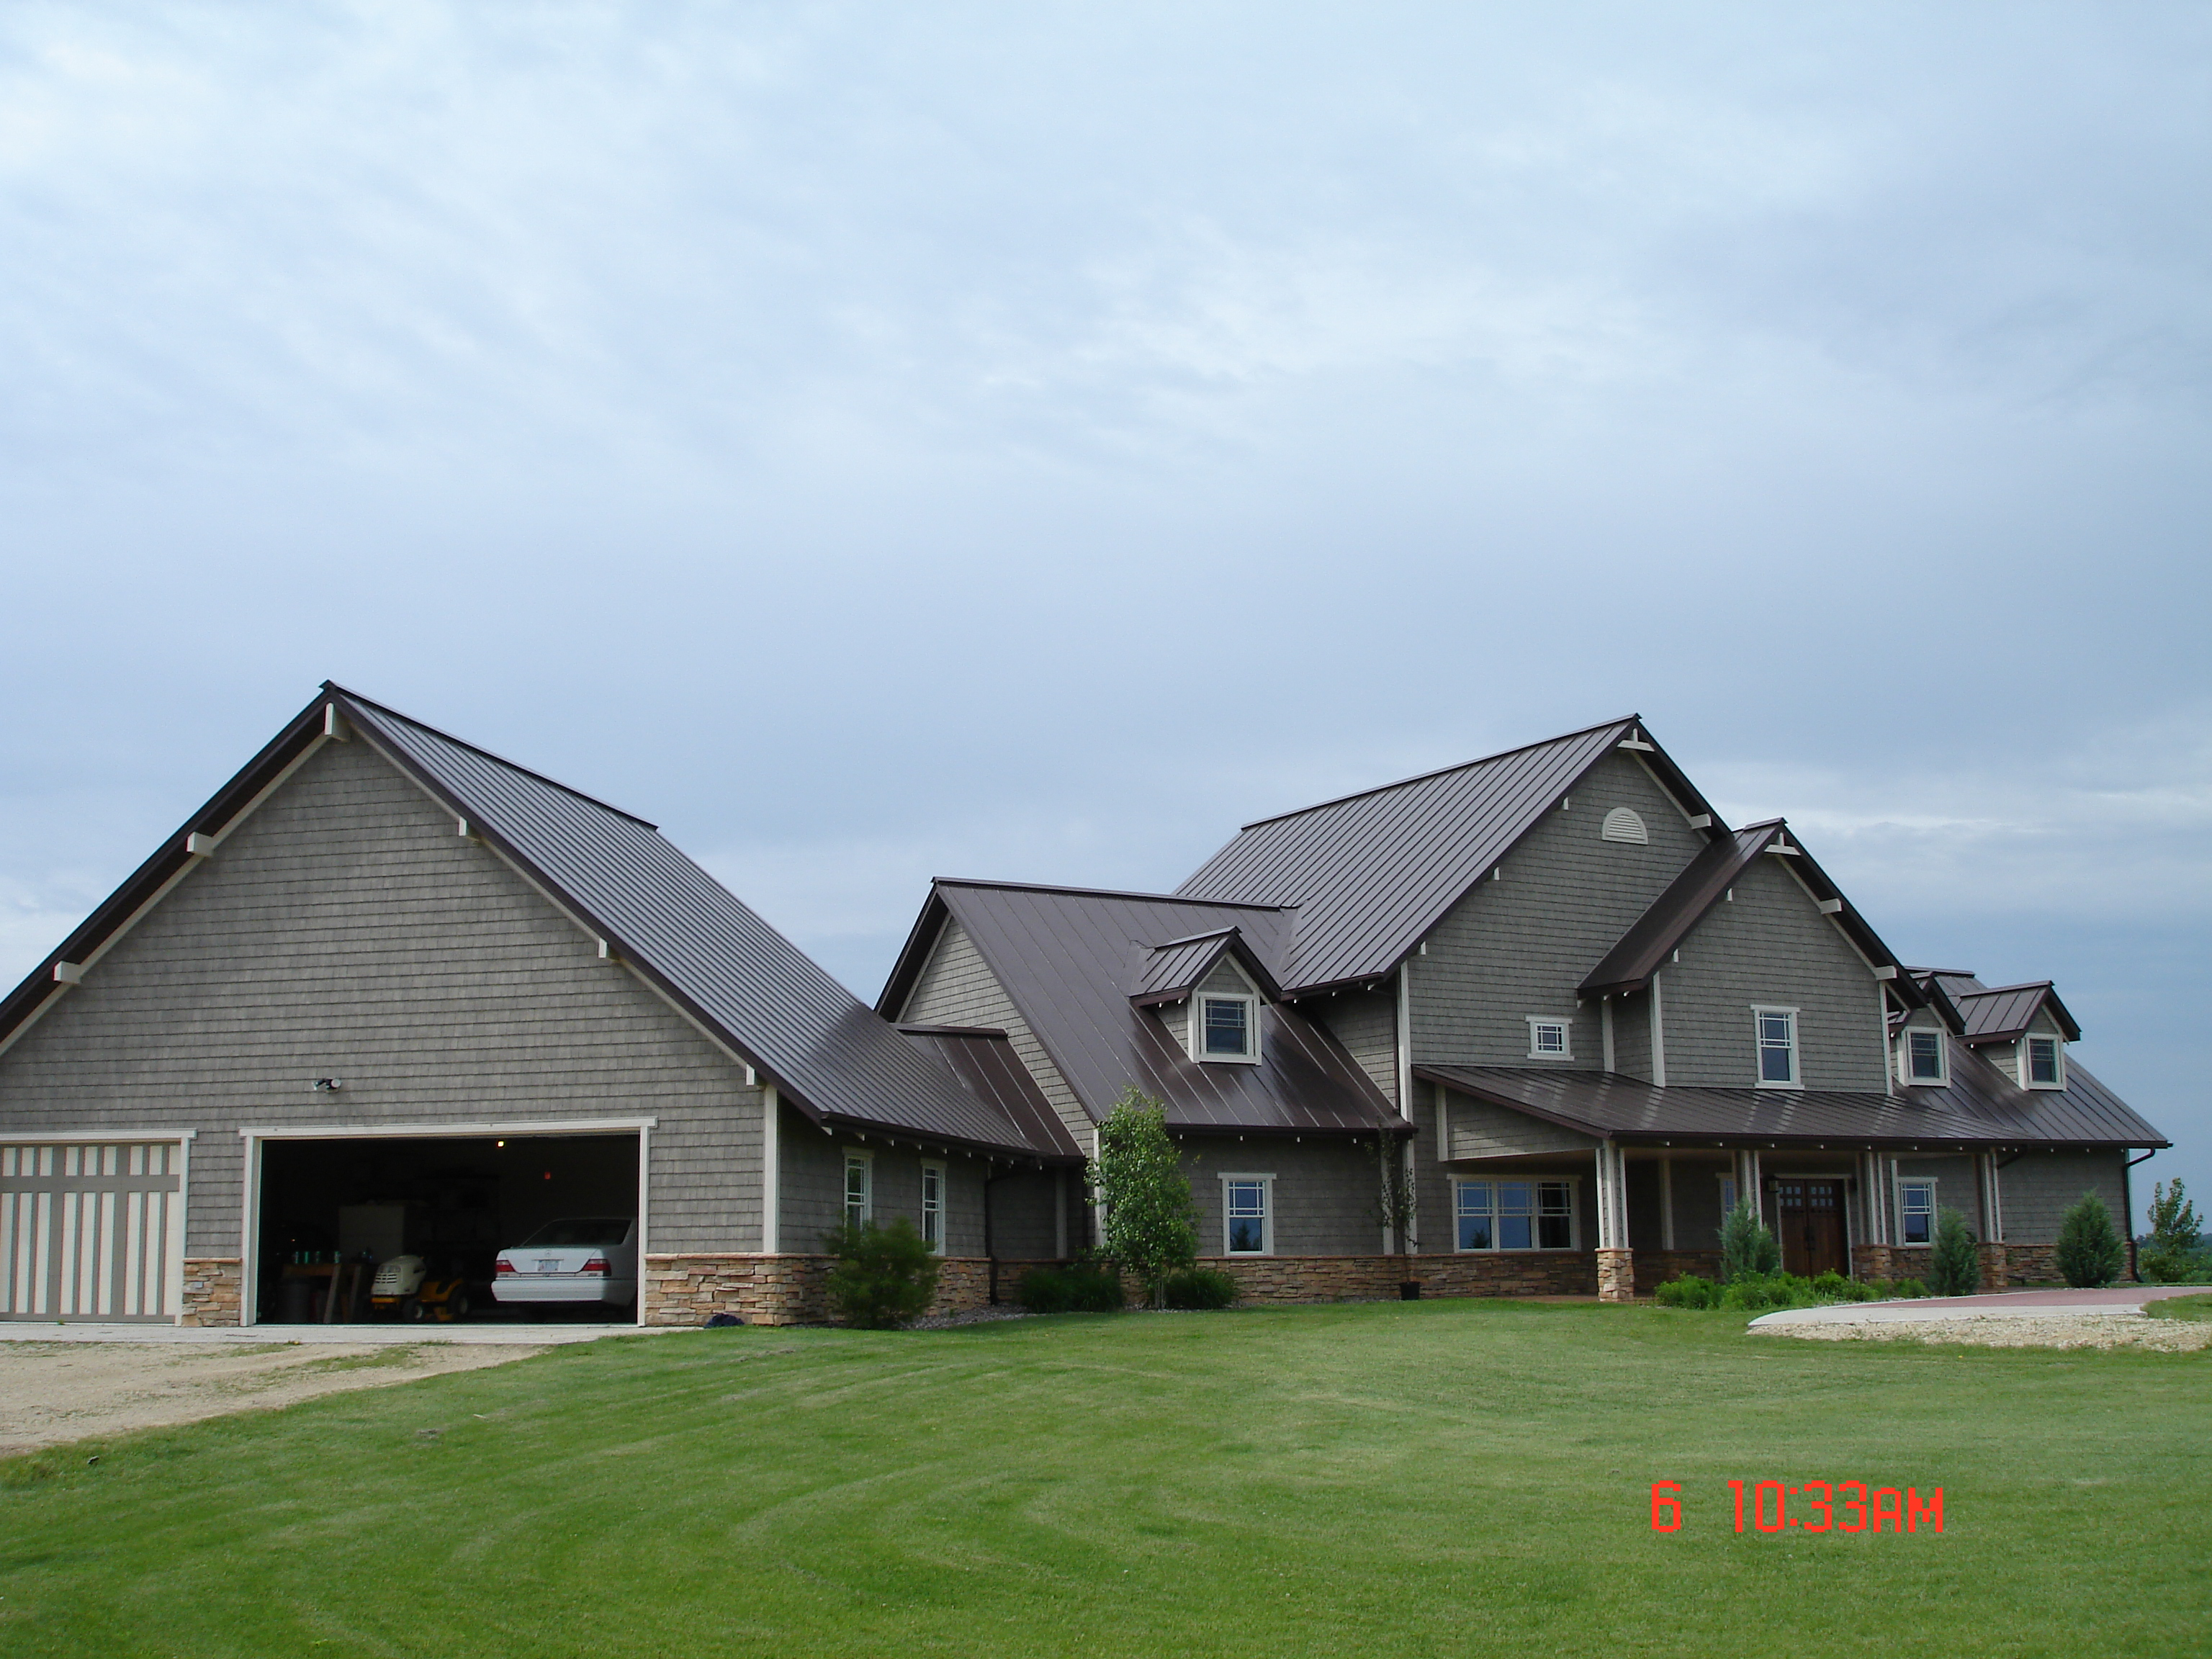 standing seam sheet metal roofing mansard brown house residential wisconsin minnesota iowa illinois north dakota